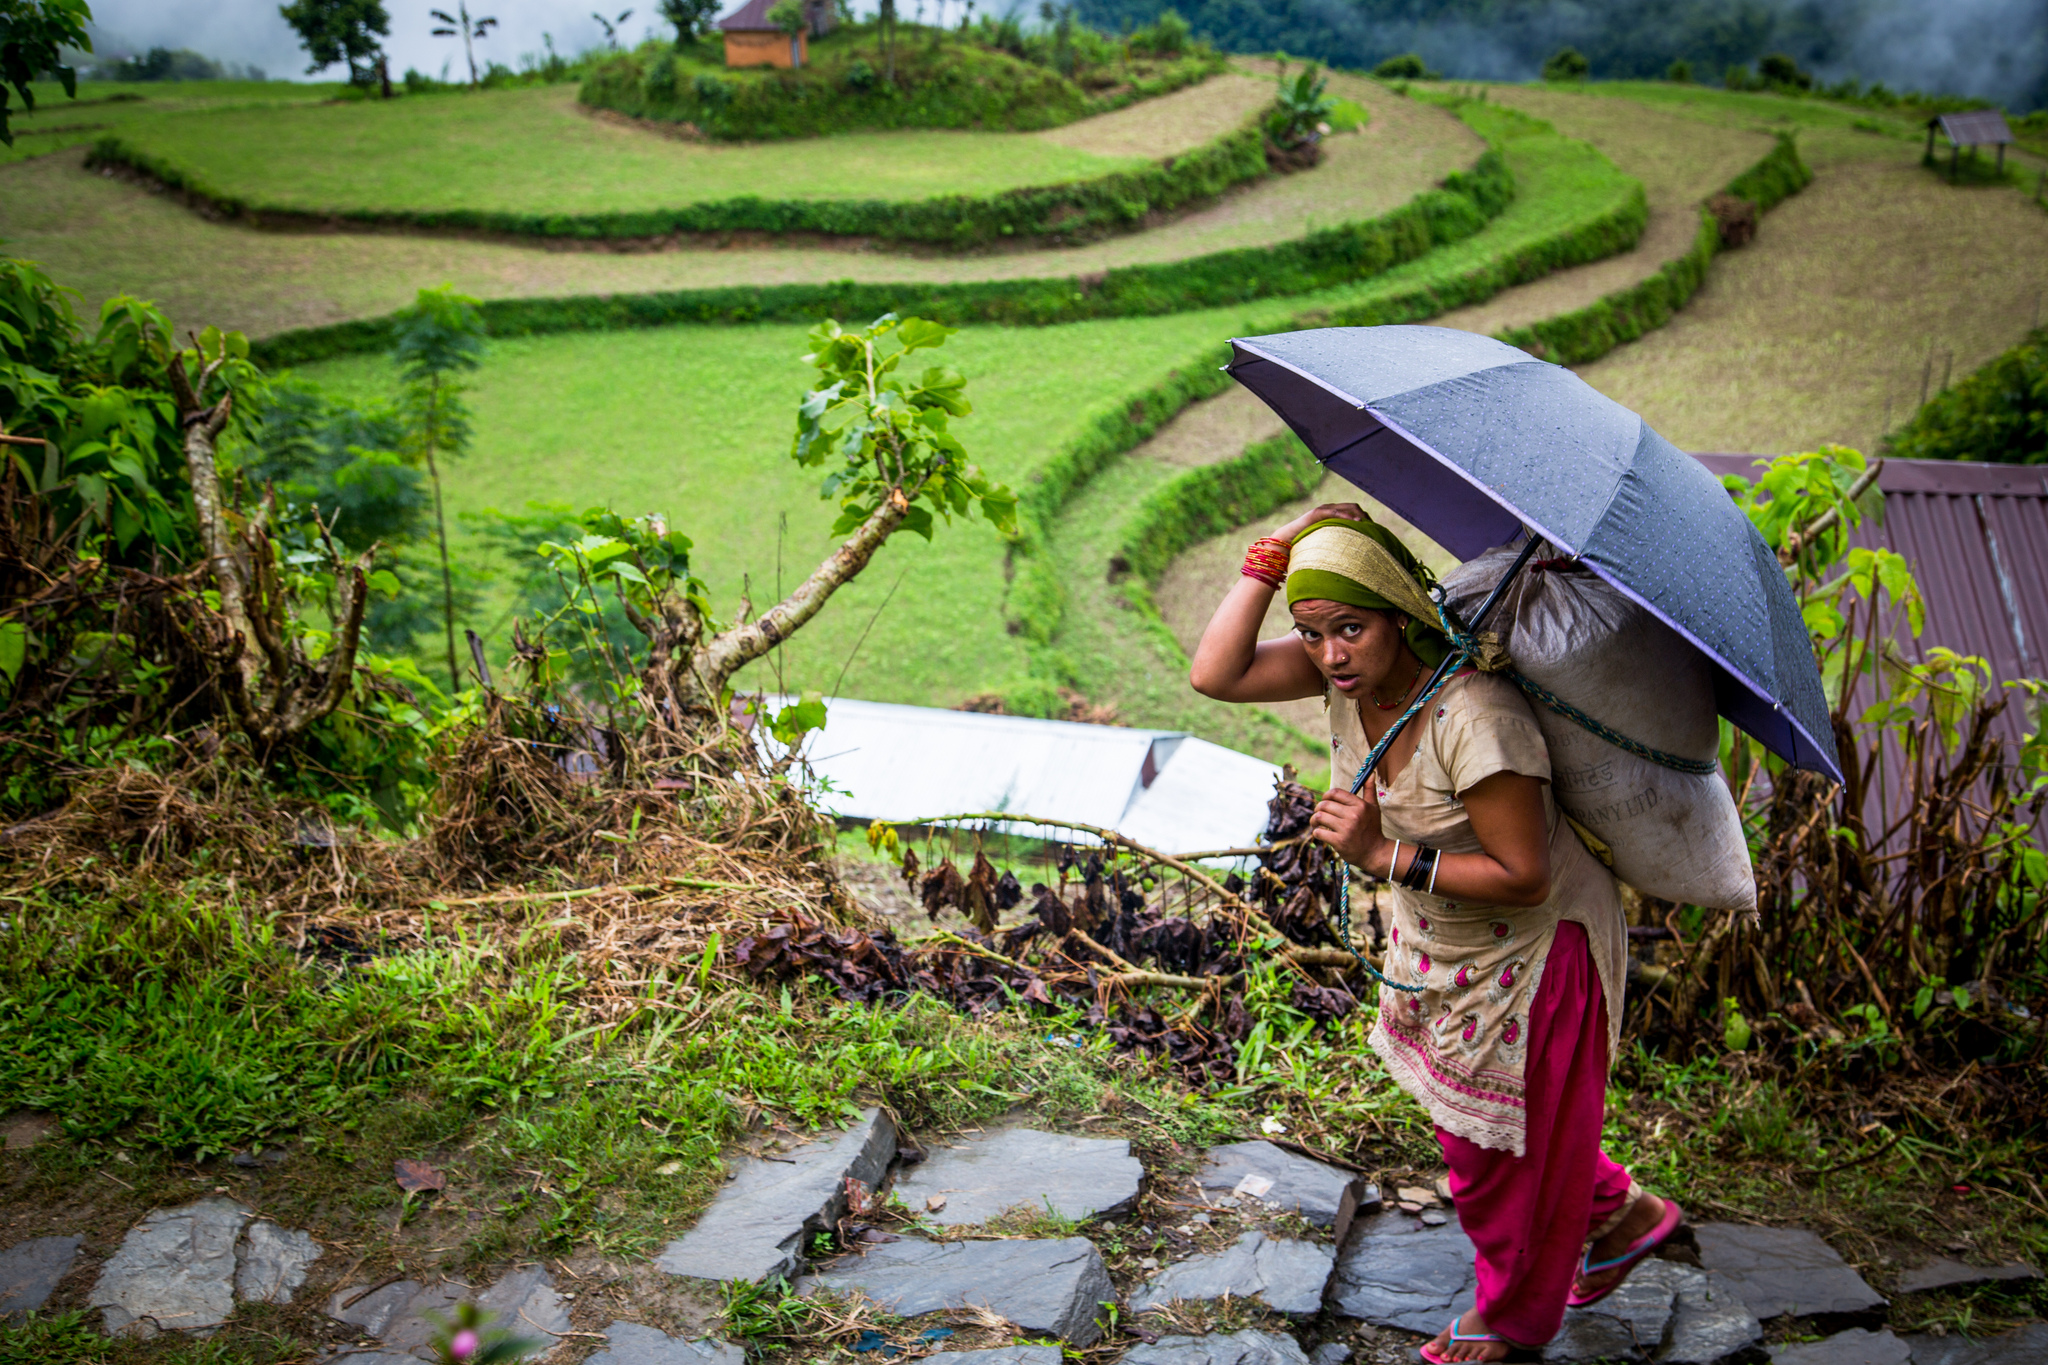 In the village of Nalma, Lamjung District, Nepal, most of the adult male population has gone abroad for work, leaving only children, women and the elderly. (Photo: Mokhamad Edliadi/CIFOR)